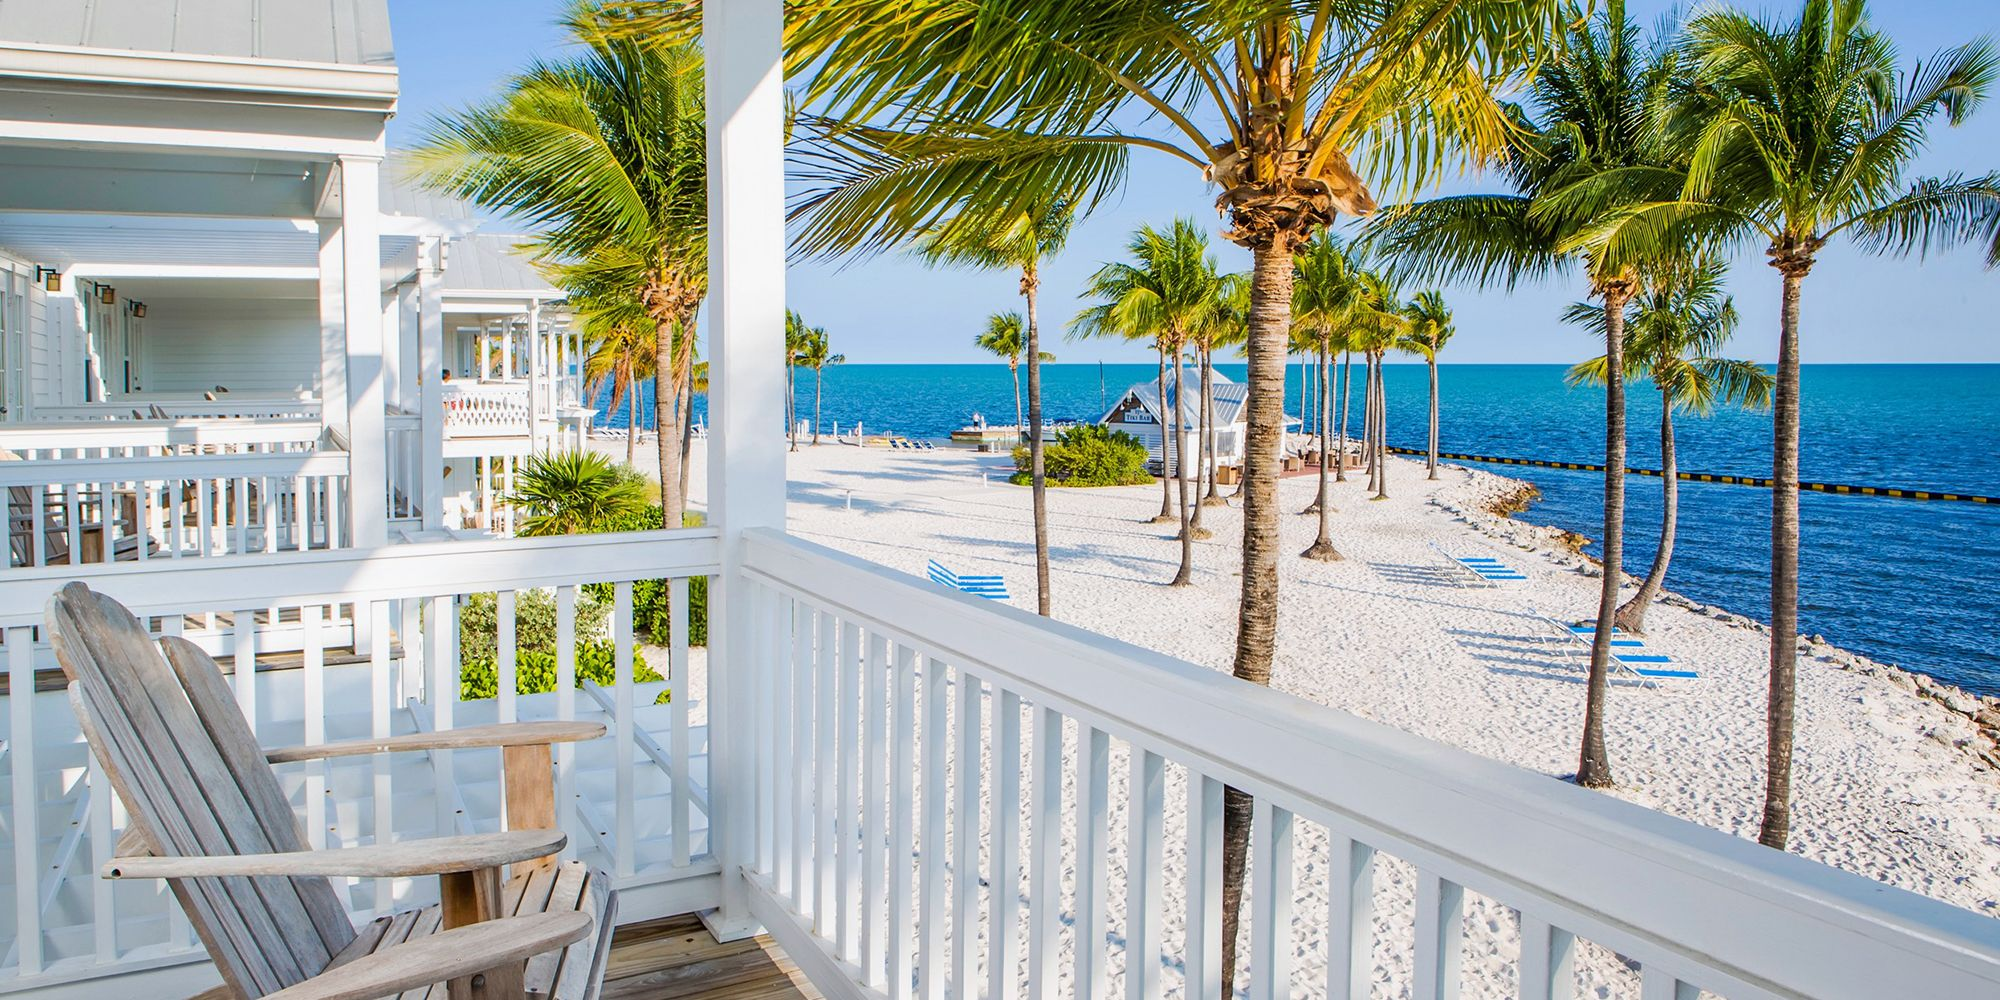 9 Best Florida Keys Hotels To Visit In 2018 Relaxing Resorts